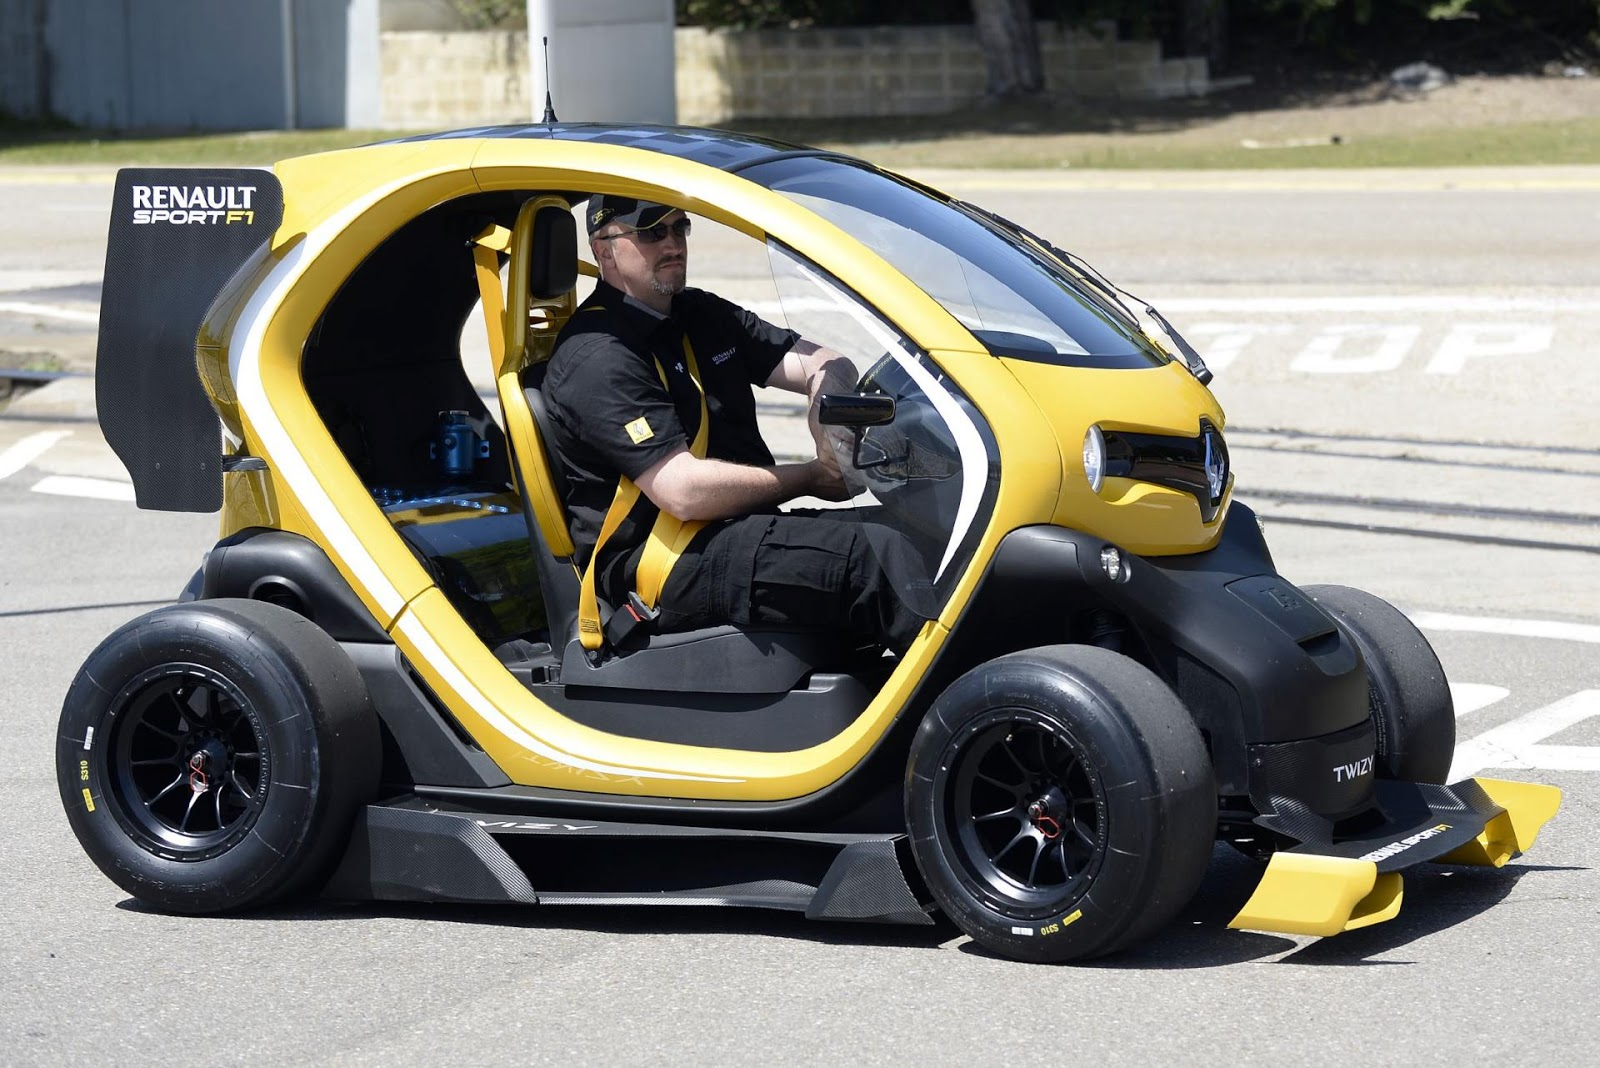 renault twizy rs f1 concept 2013 hottest car wallpapers bestgarage. Black Bedroom Furniture Sets. Home Design Ideas